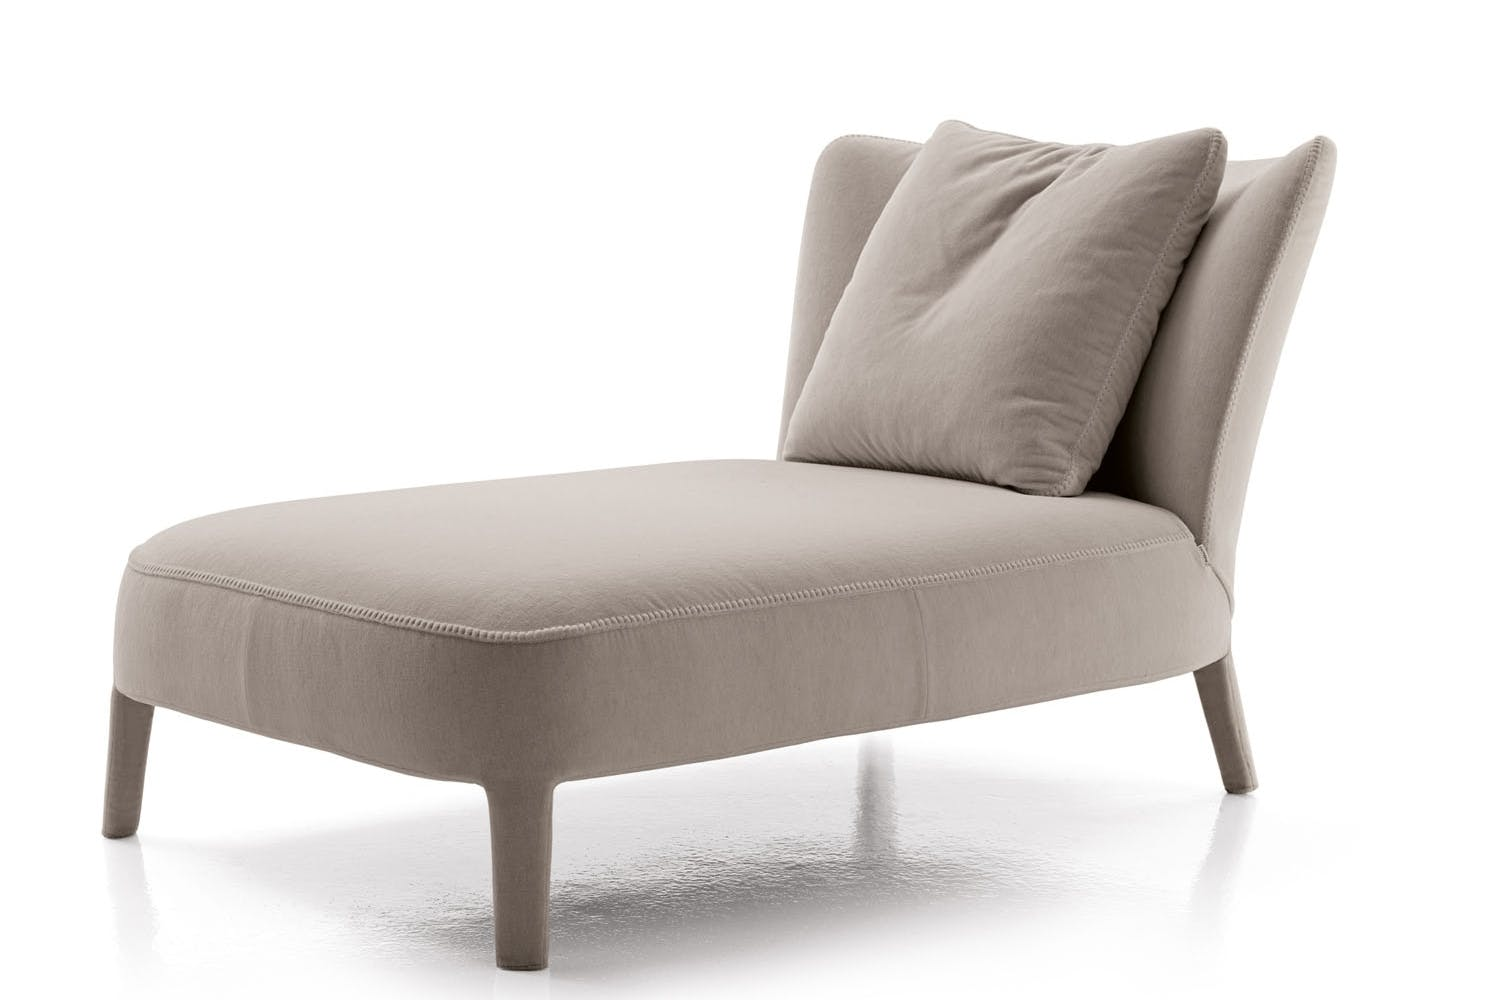 Febo chaise longue by antonio citterio for maxalto space for Chaise longue furniture